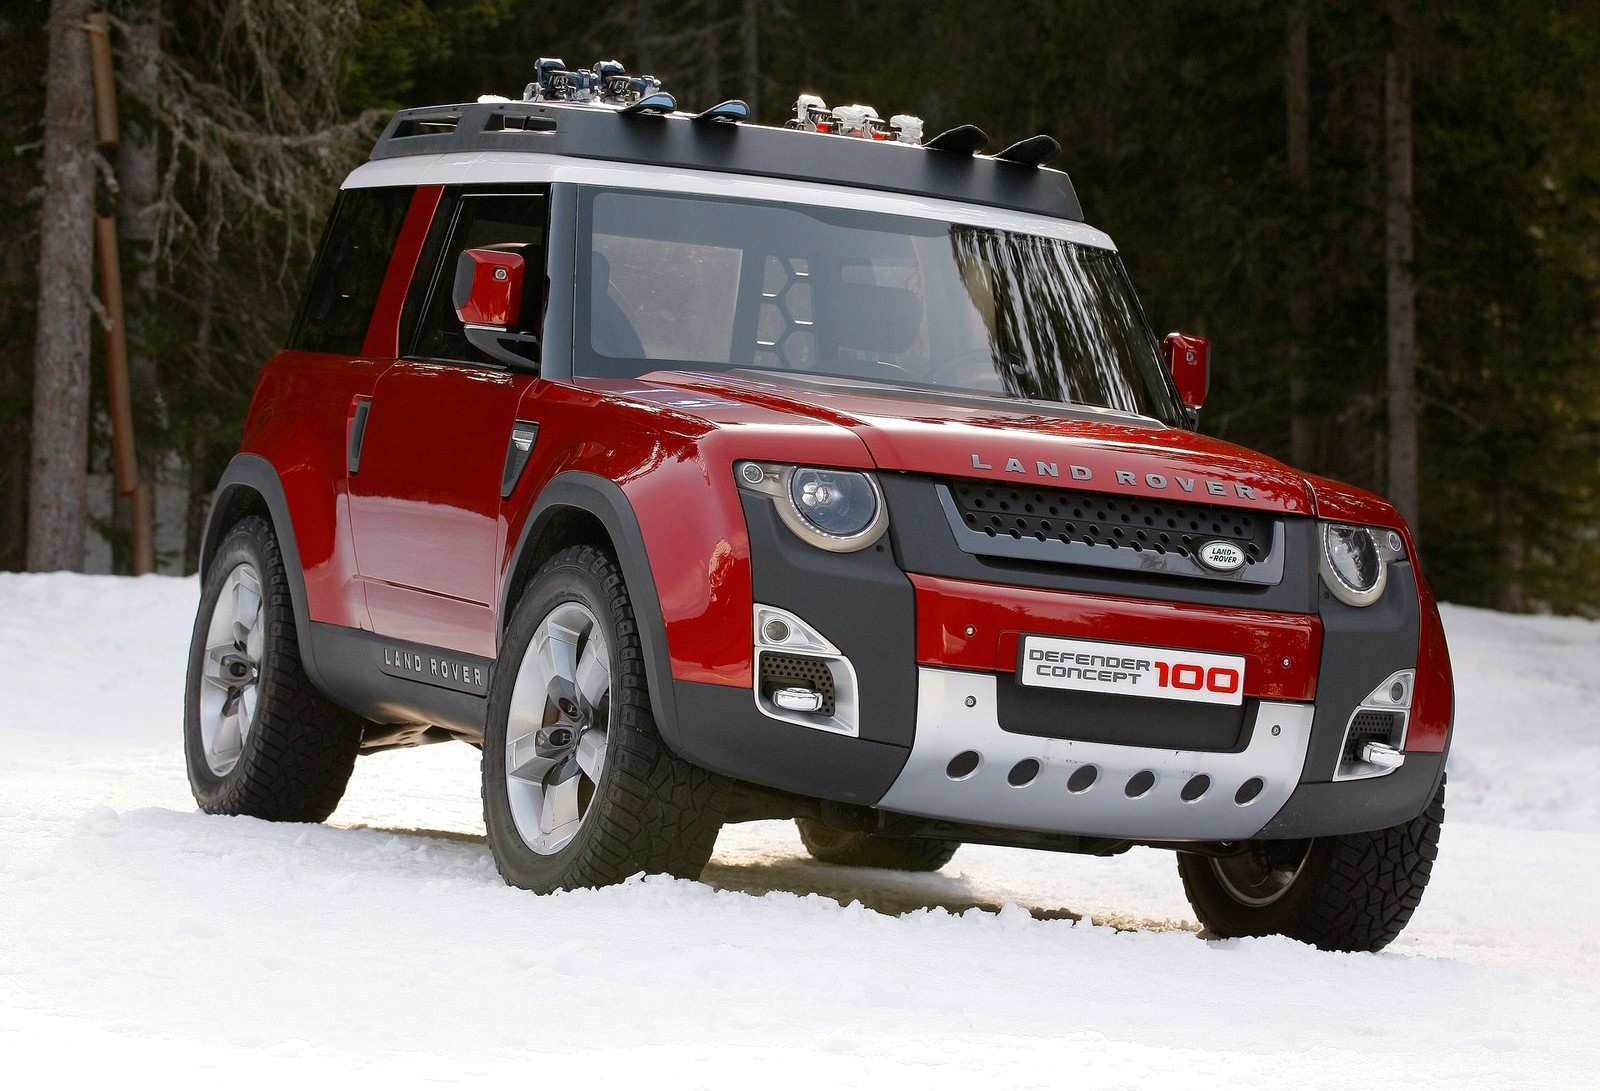 72 Concept of 2019 Land Rover Defender Price Images by 2019 Land Rover Defender Price